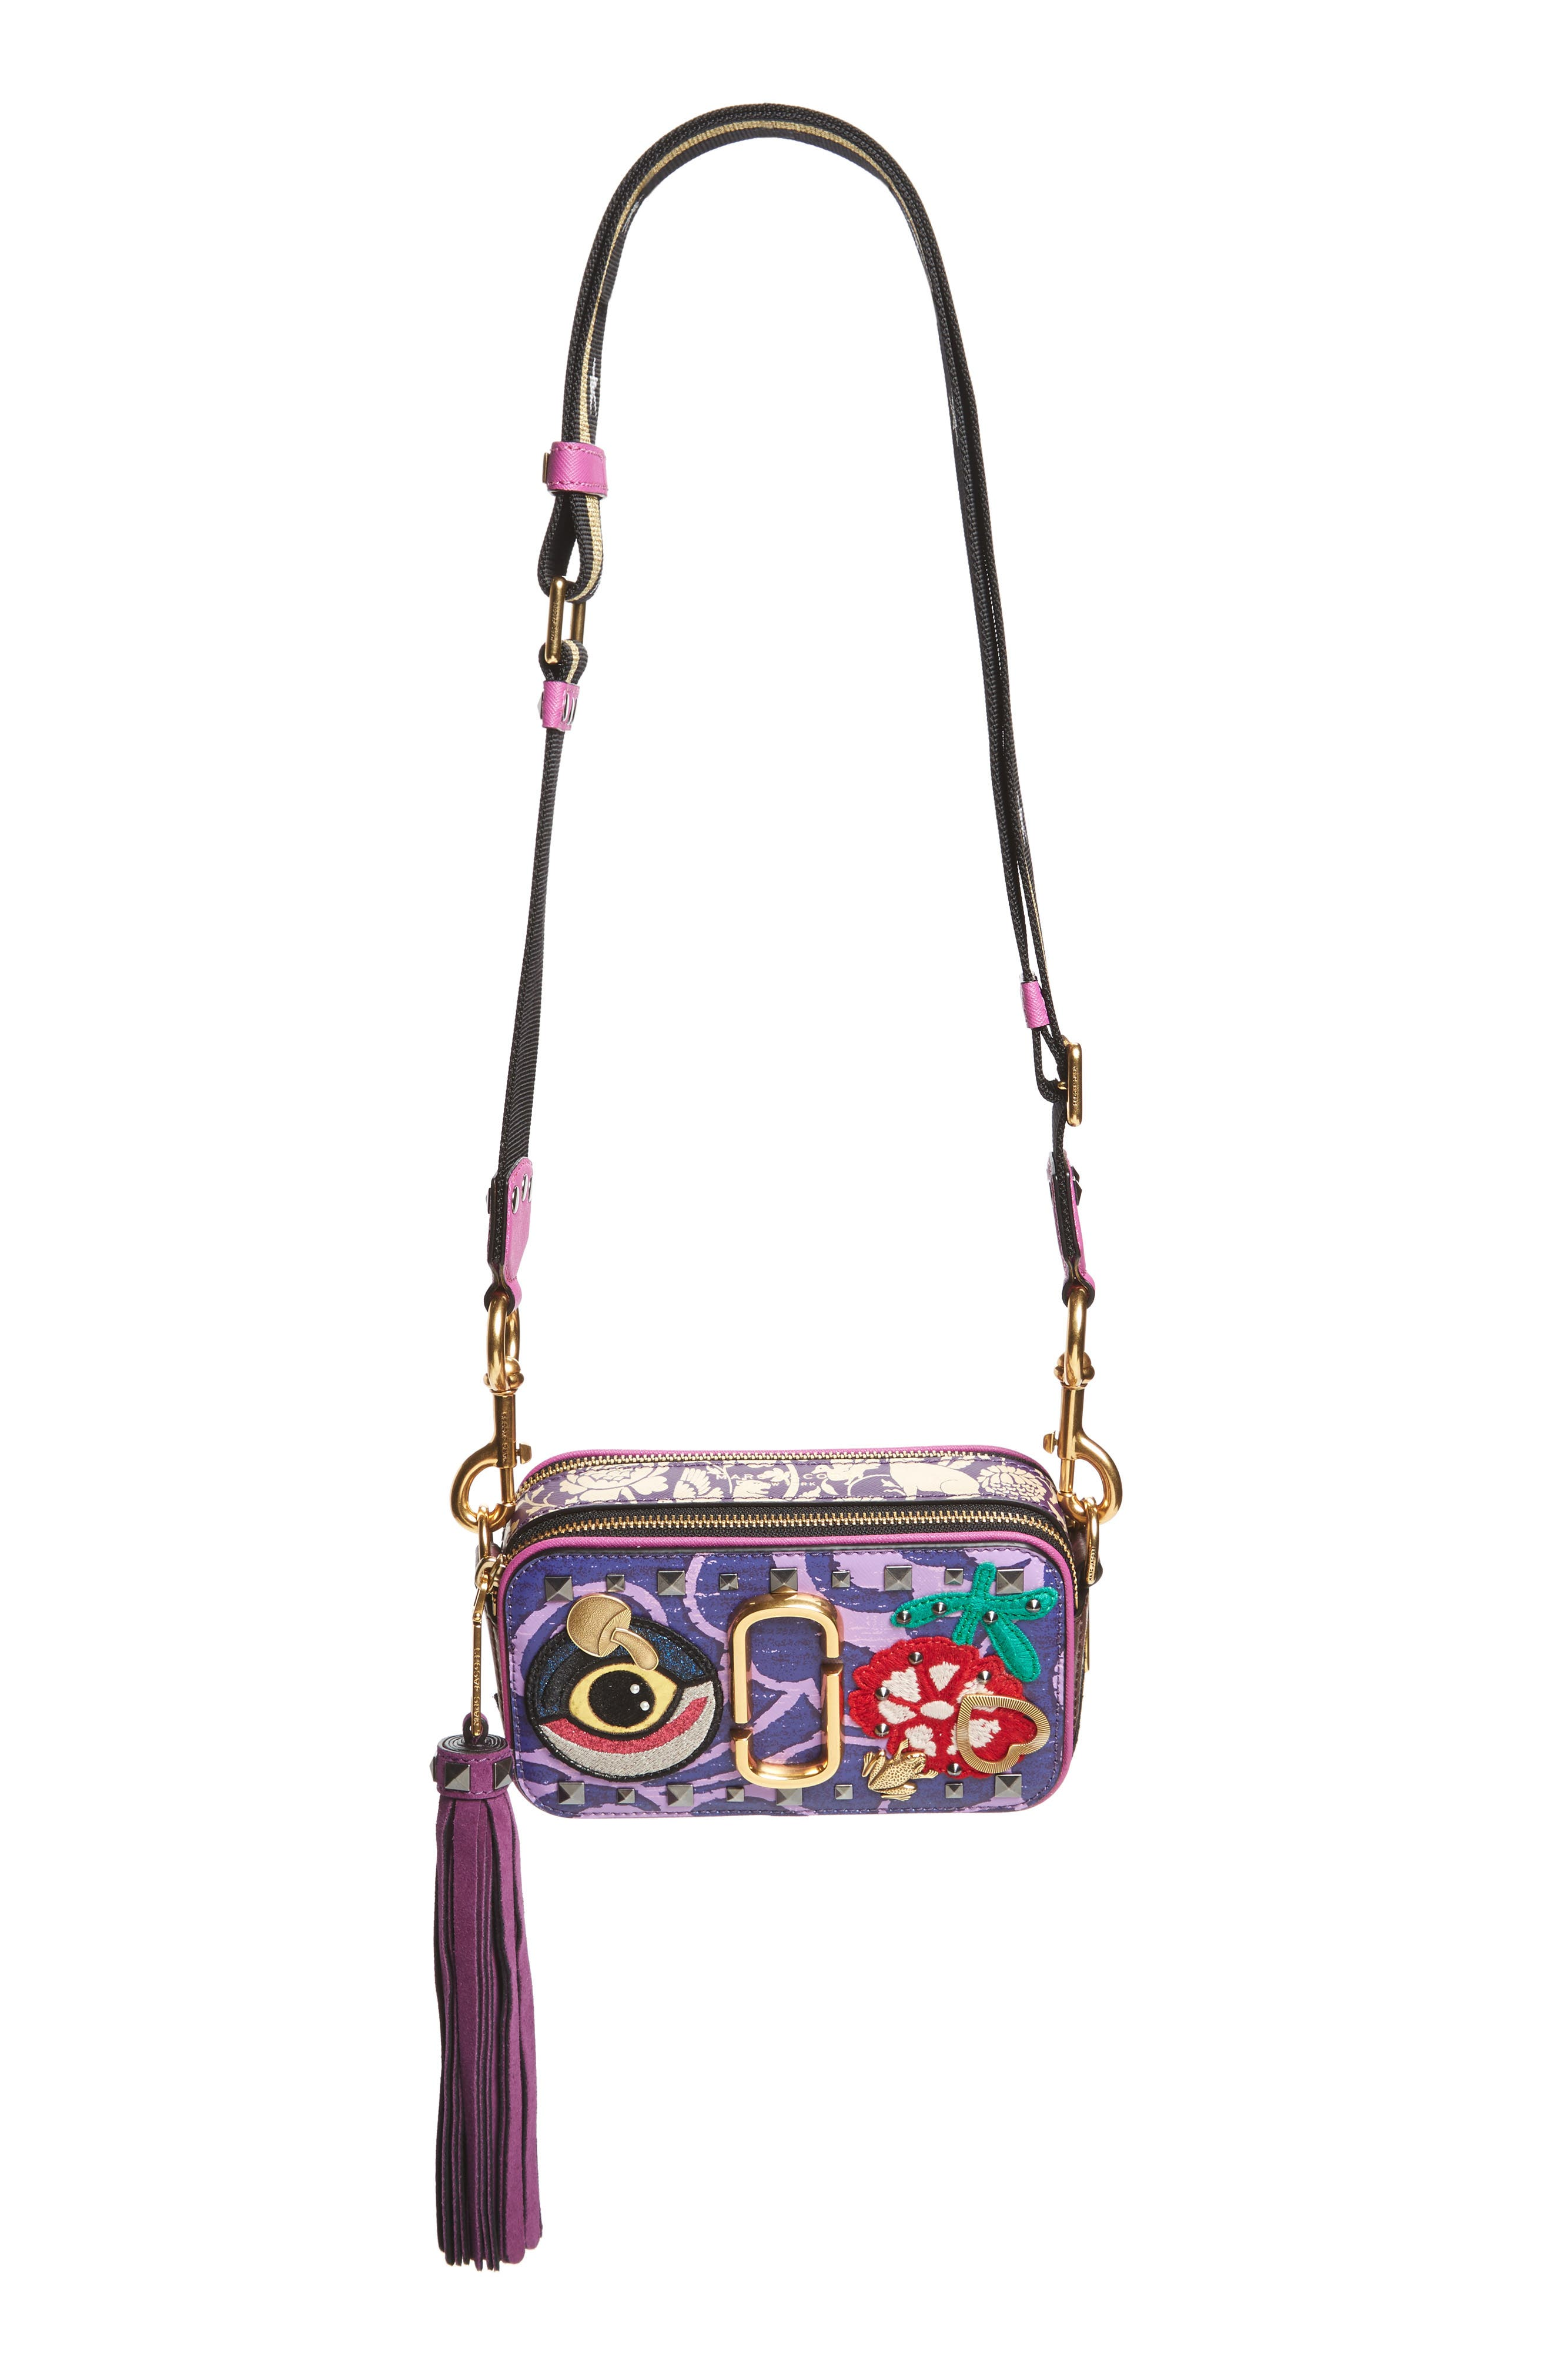 MARC JACOBS Tapestry Snapshot Crossbody Bag